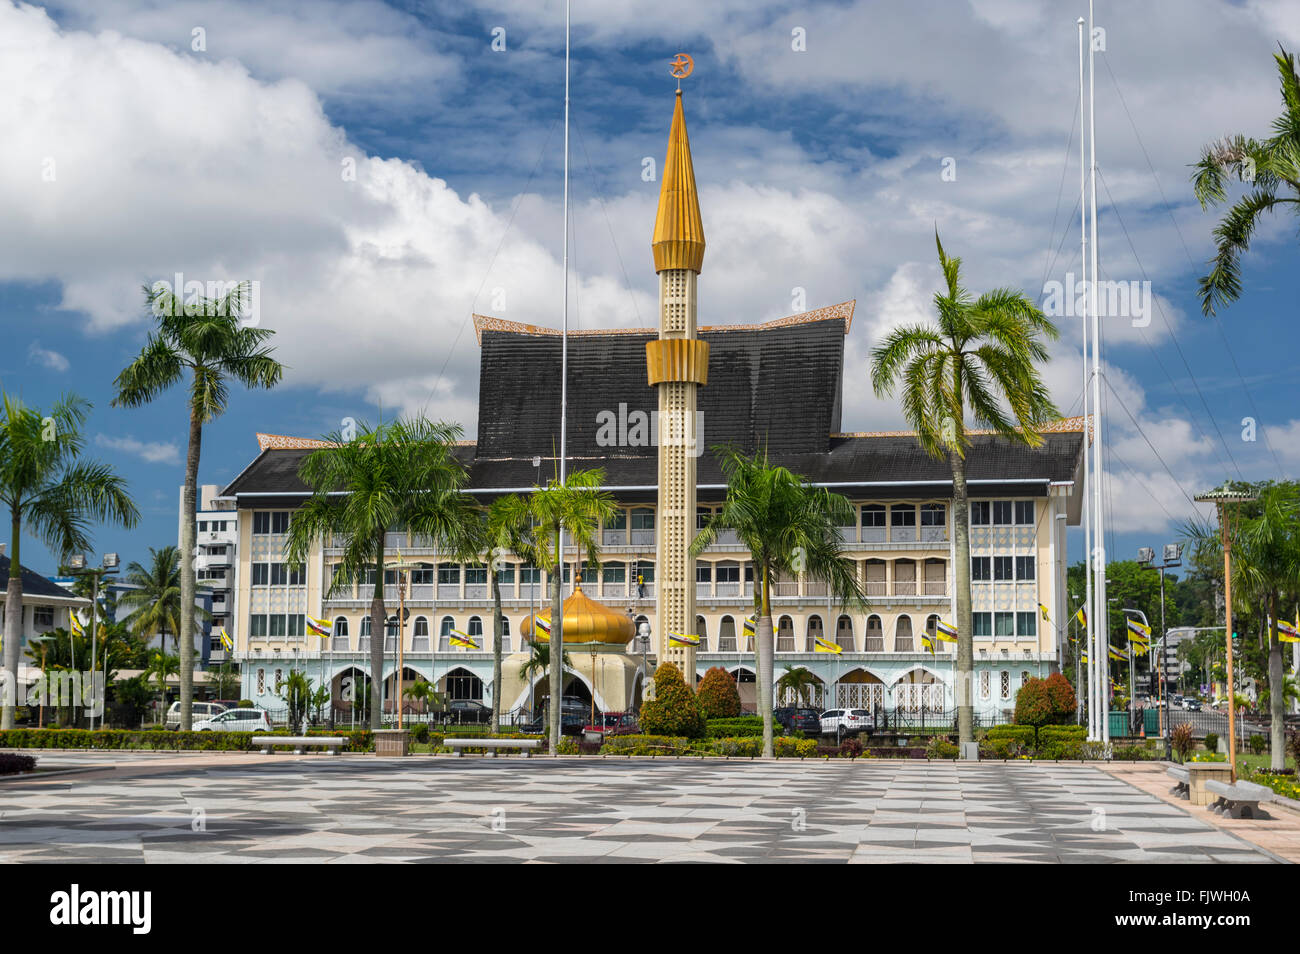 Jabatan Hal Ehwal Syariah, the Ministry of Religious Islamic Affairs, in Bandar Seri Begawan, Brunei Darussalam. - Stock Image